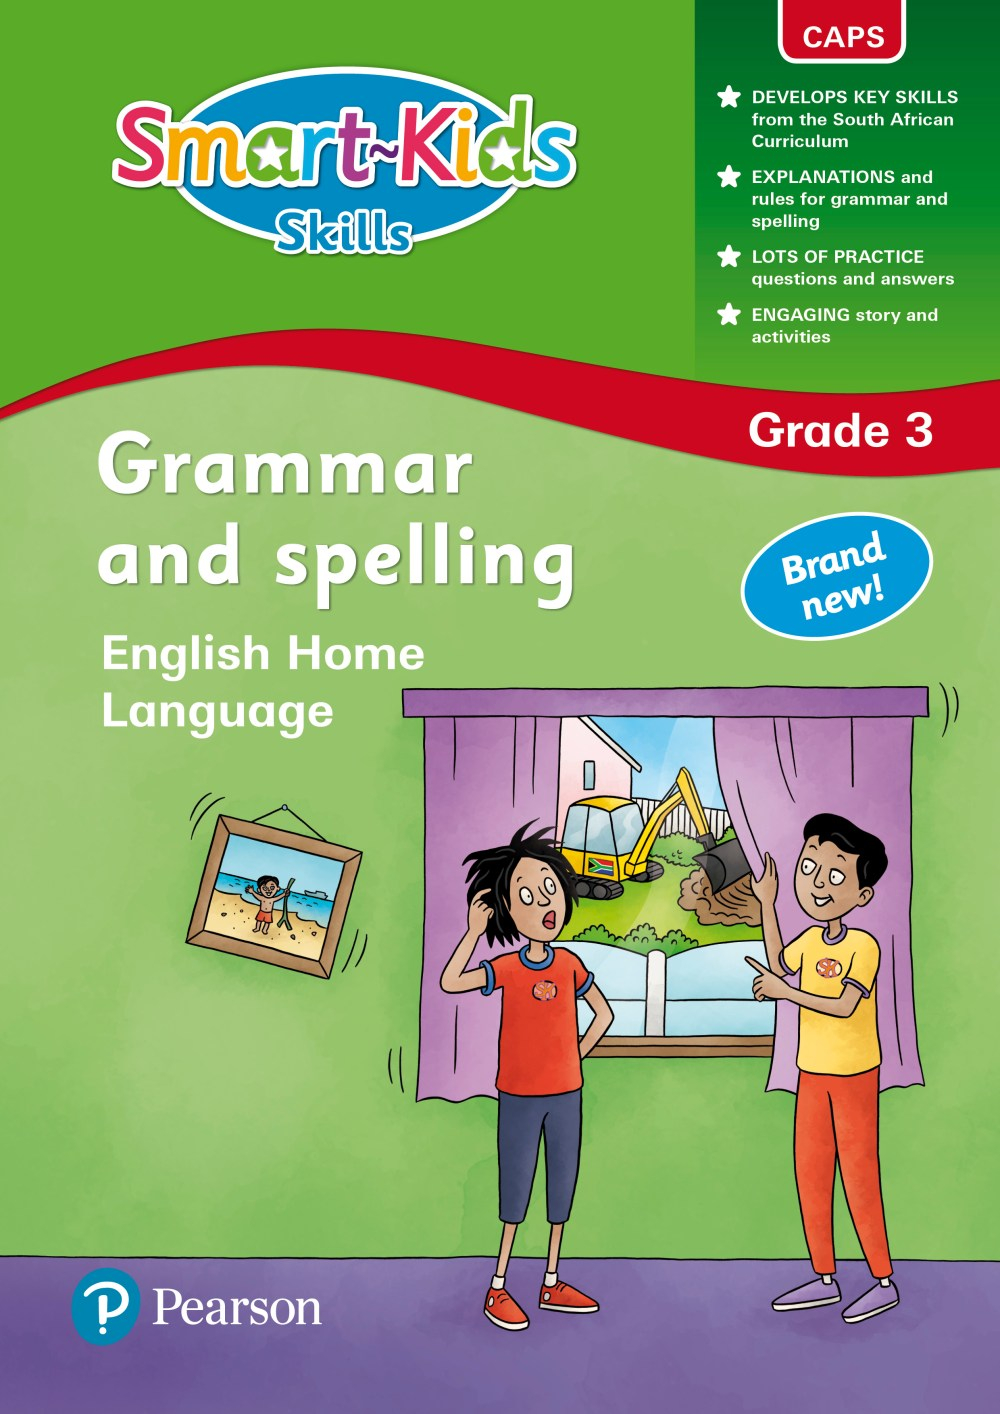 medium resolution of Smart-Kids Skills Grammar and Spelling Grade 3   Smartkids